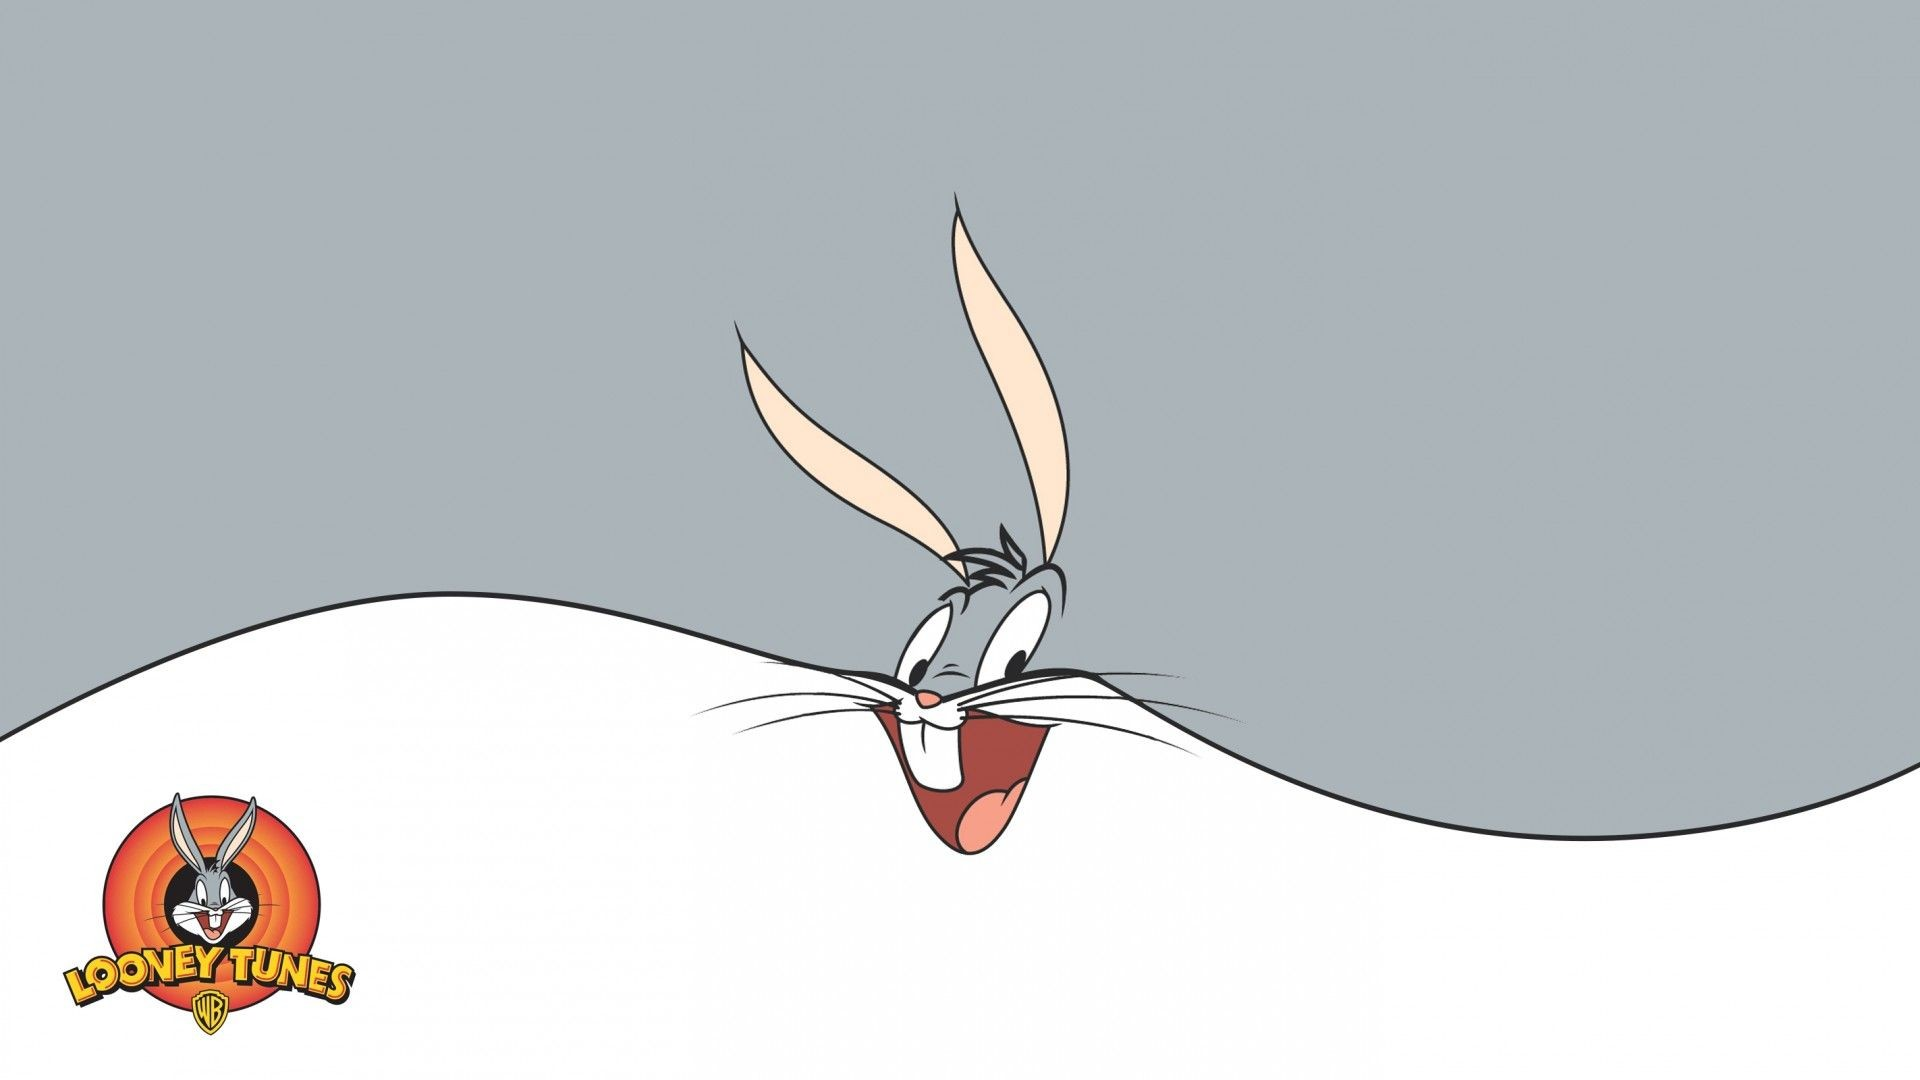 Res: 1920x1080, Bugs Bunny HD Wallpapers Free Background 1920×1080 Bugs Bunny Wallpapers  (45 Wallpapers)